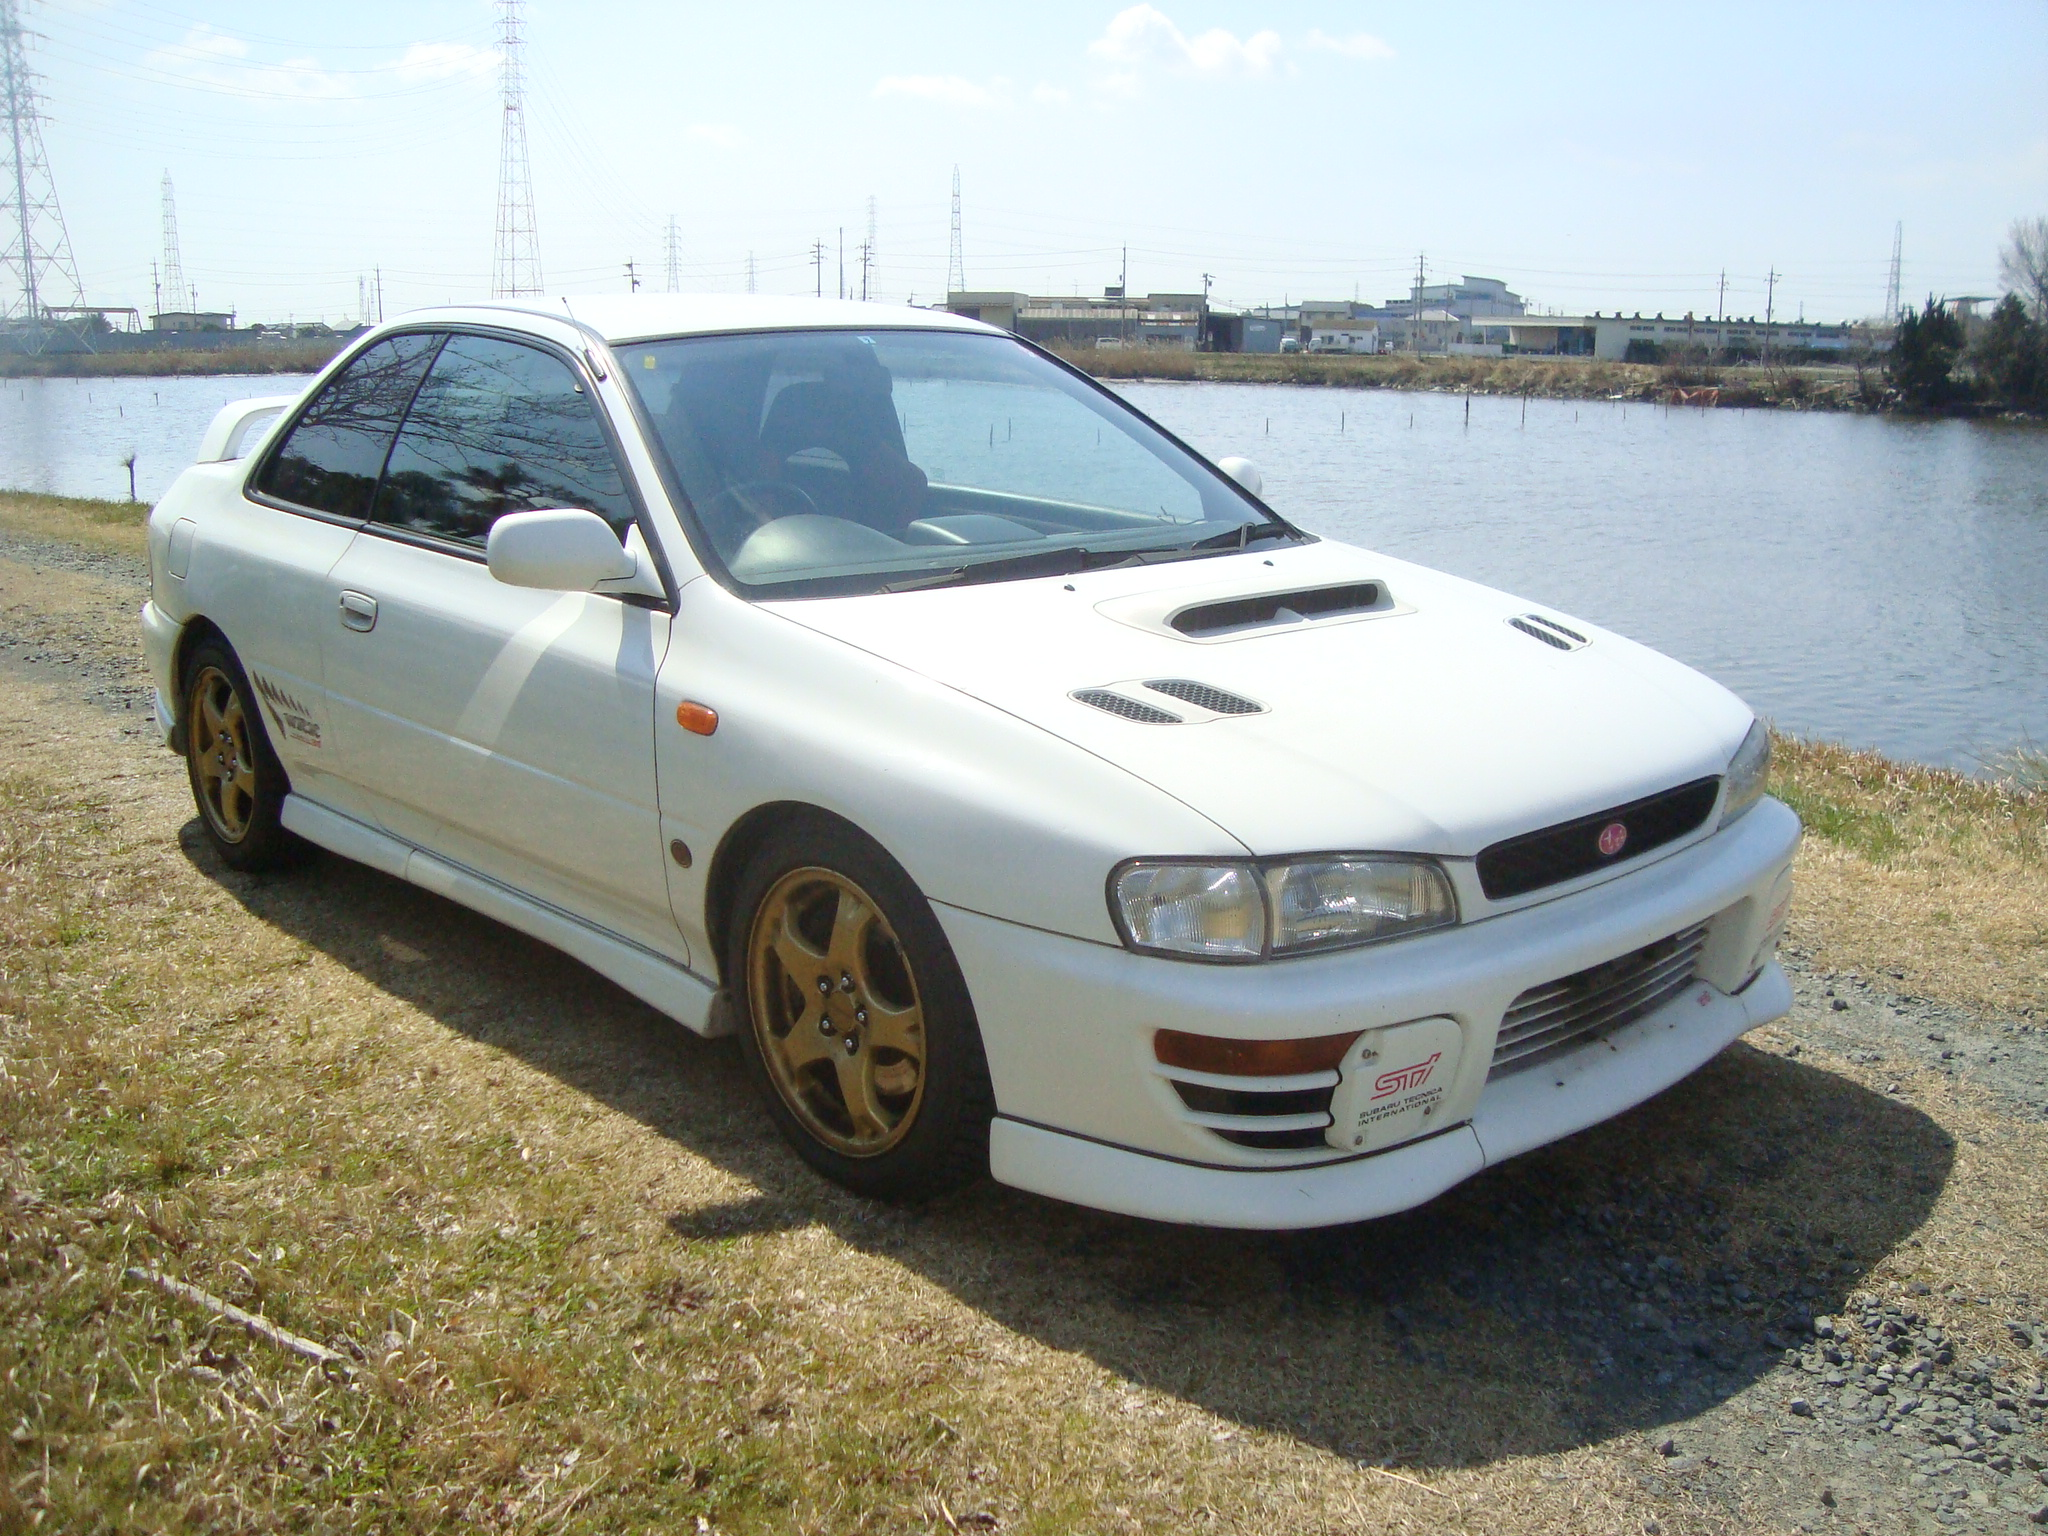 subaru impreza wrx type r sti 4 1998 used for sale. Black Bedroom Furniture Sets. Home Design Ideas